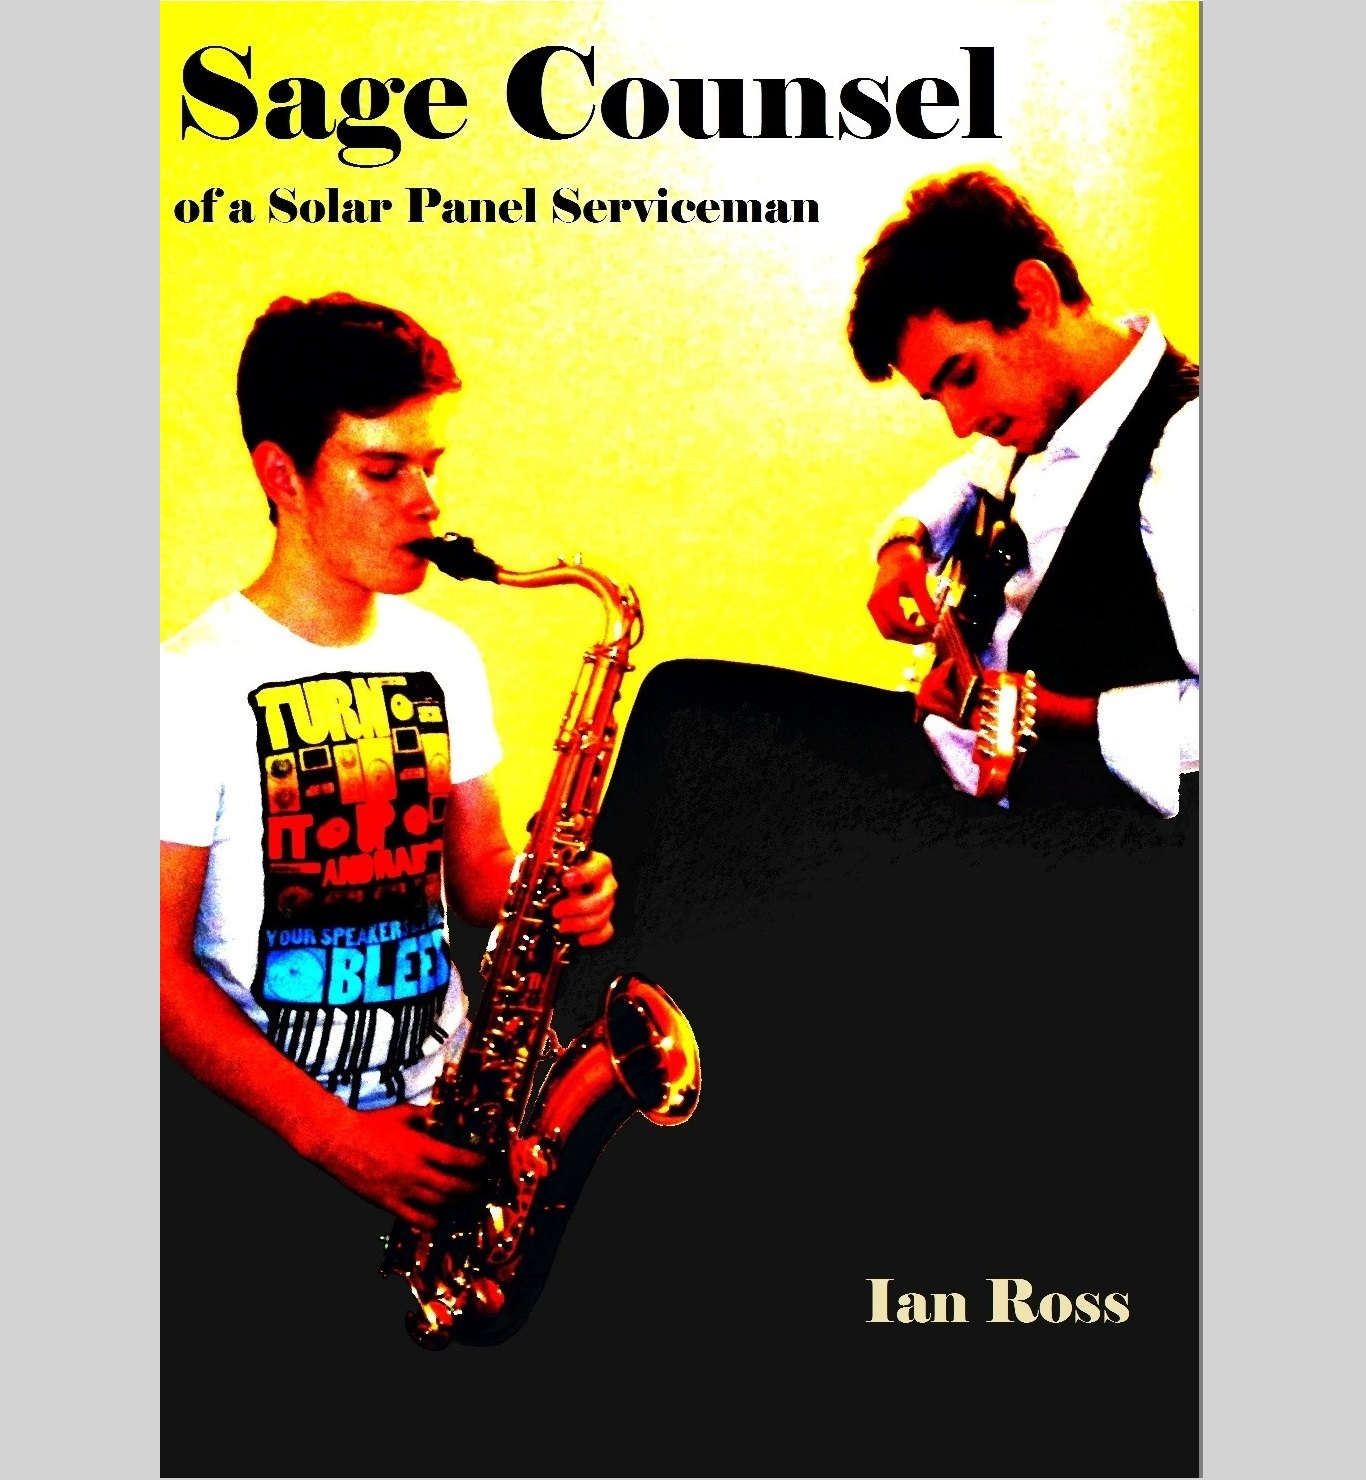 Sage Counsel Coverpage